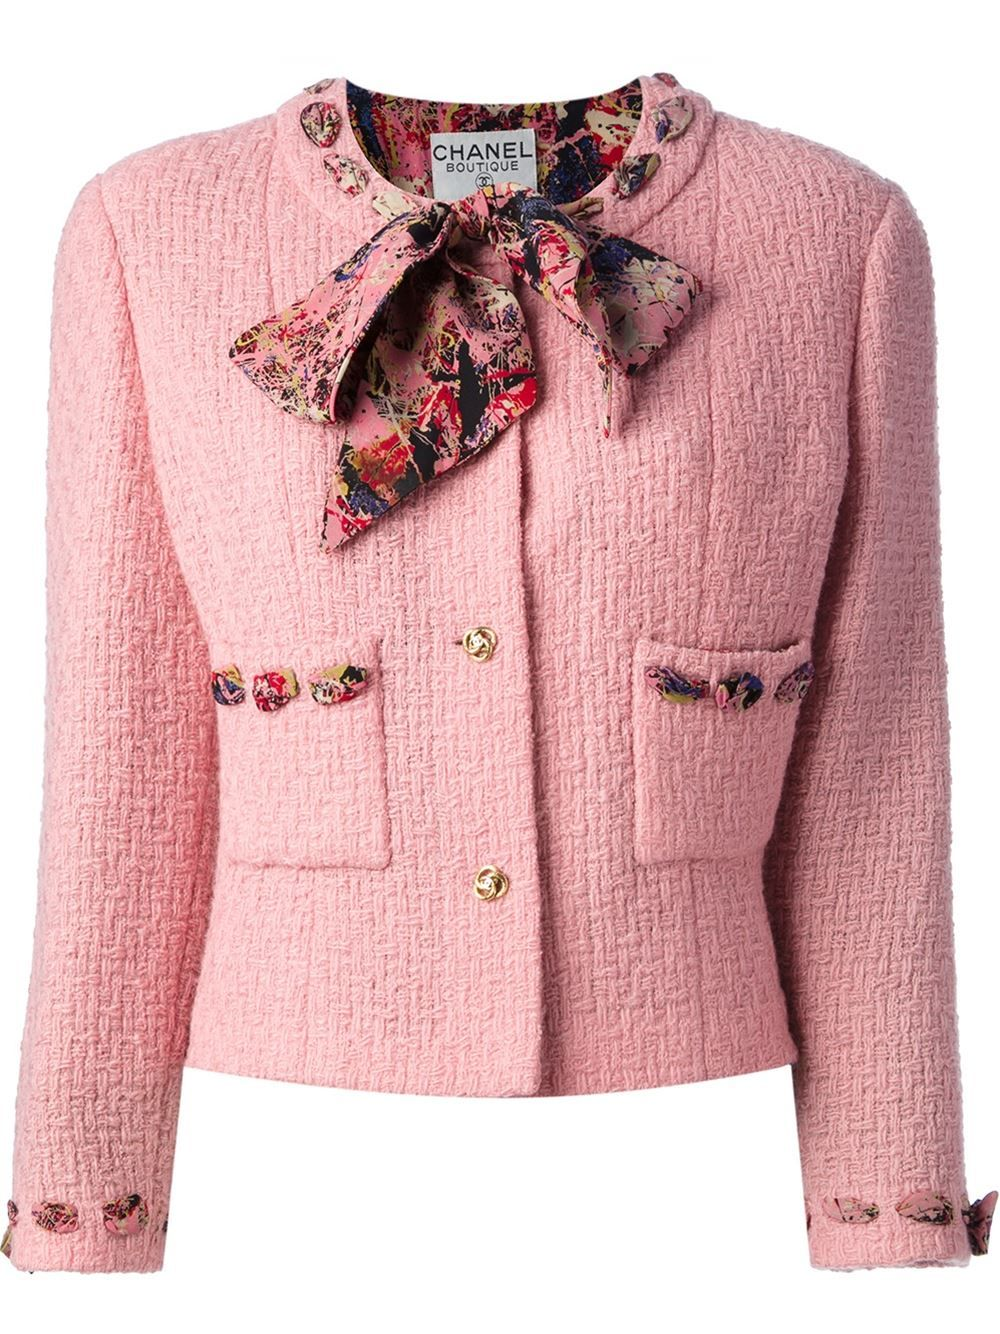 Chanel Vintage Boucle Jacket And Skirt Suit | chanel | Pinterest ...